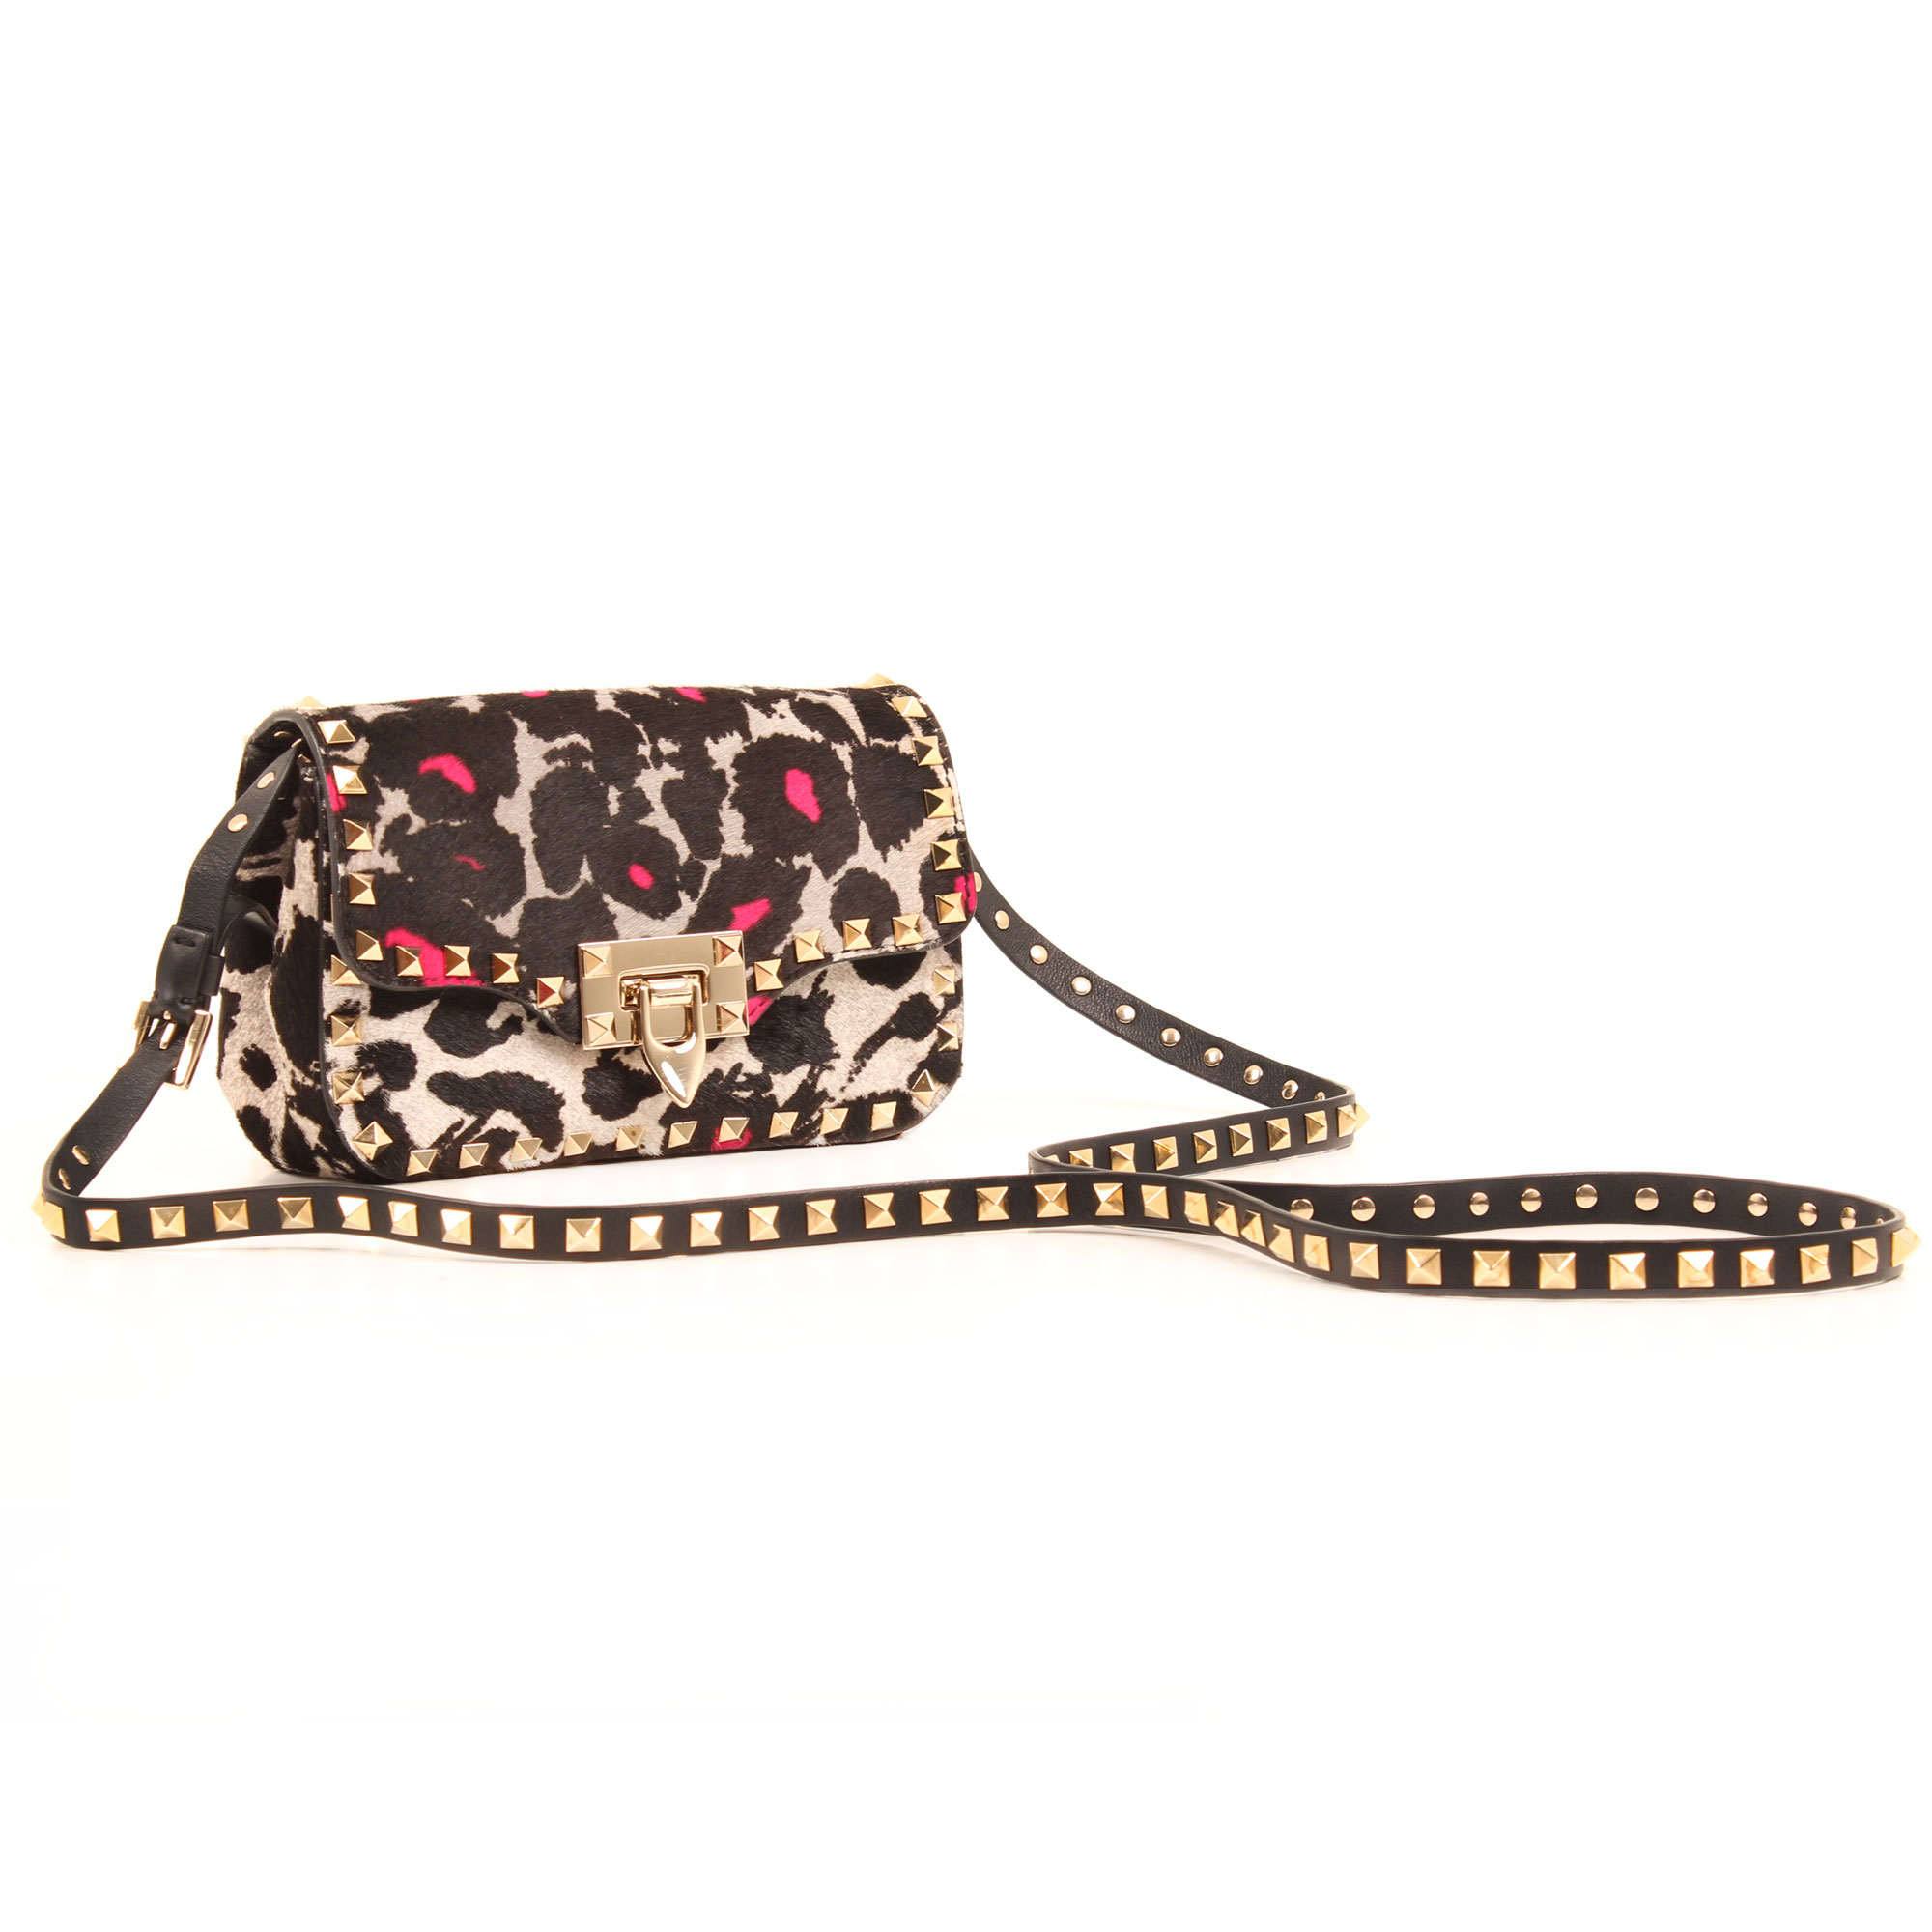 General image of valentino rockstud mini cross body bag leopard print pink hair calf